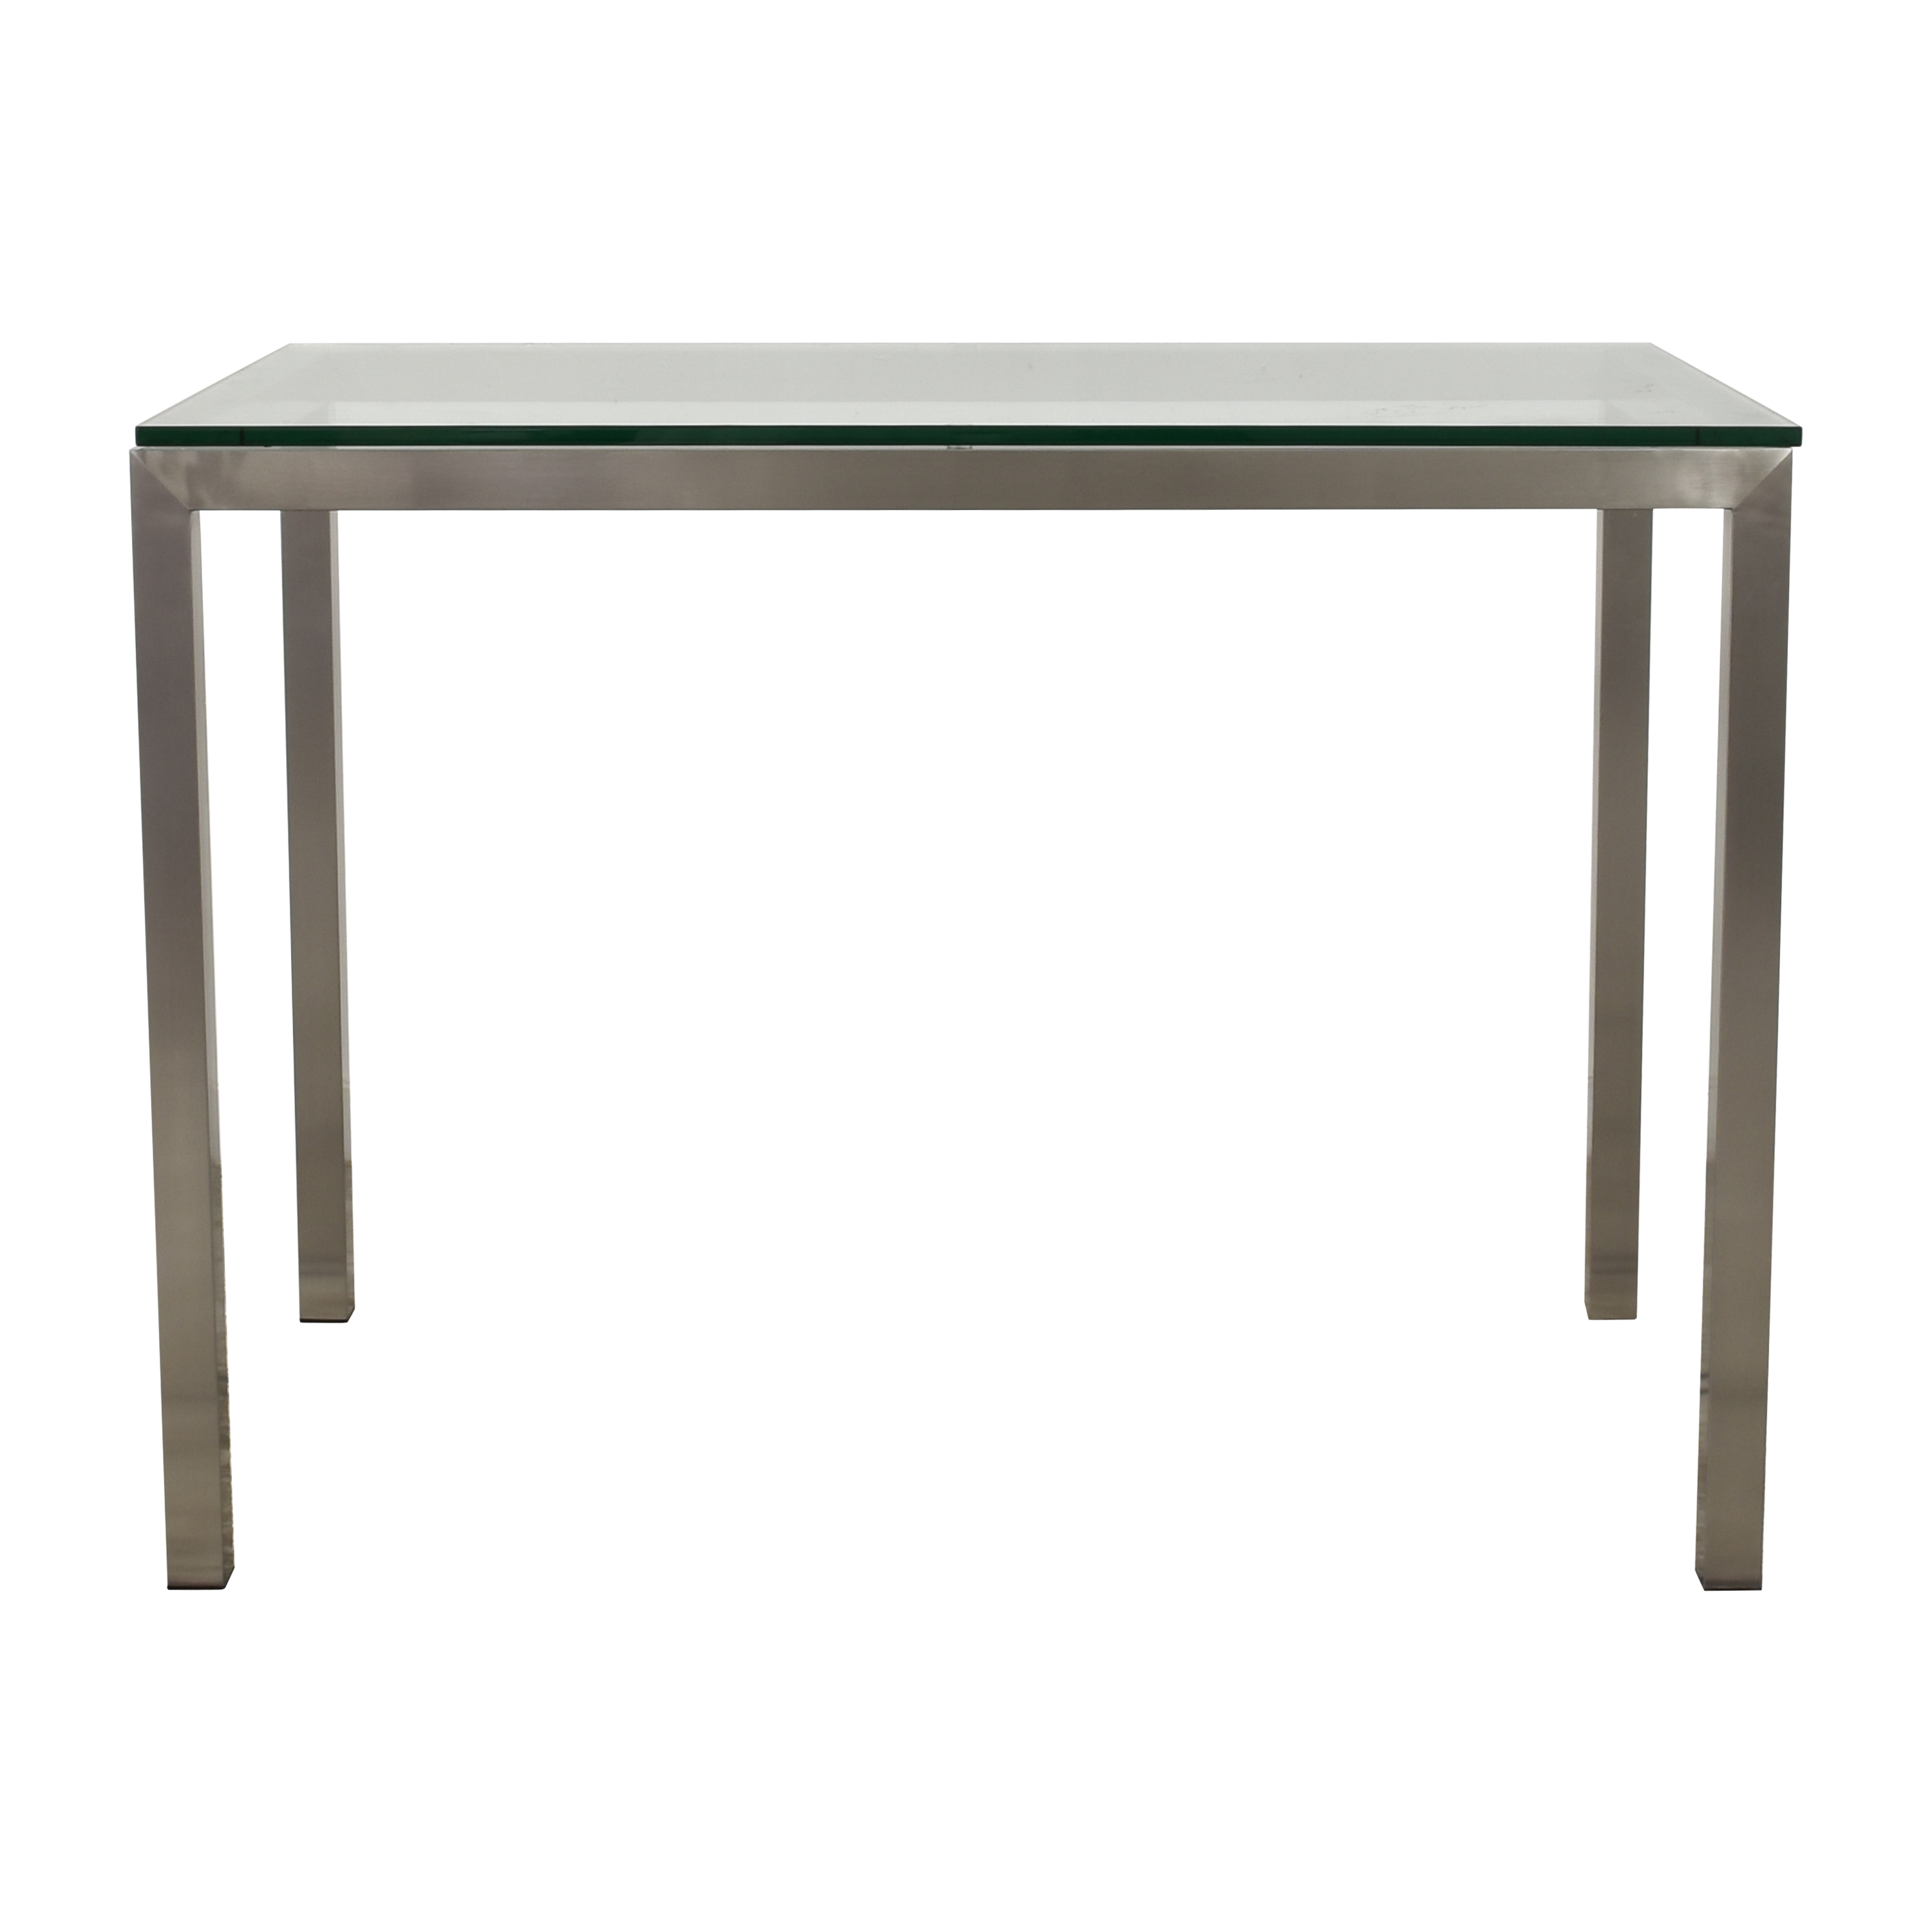 Crate & Barrel Crate & Barrel Parsons High Dining Table Silver